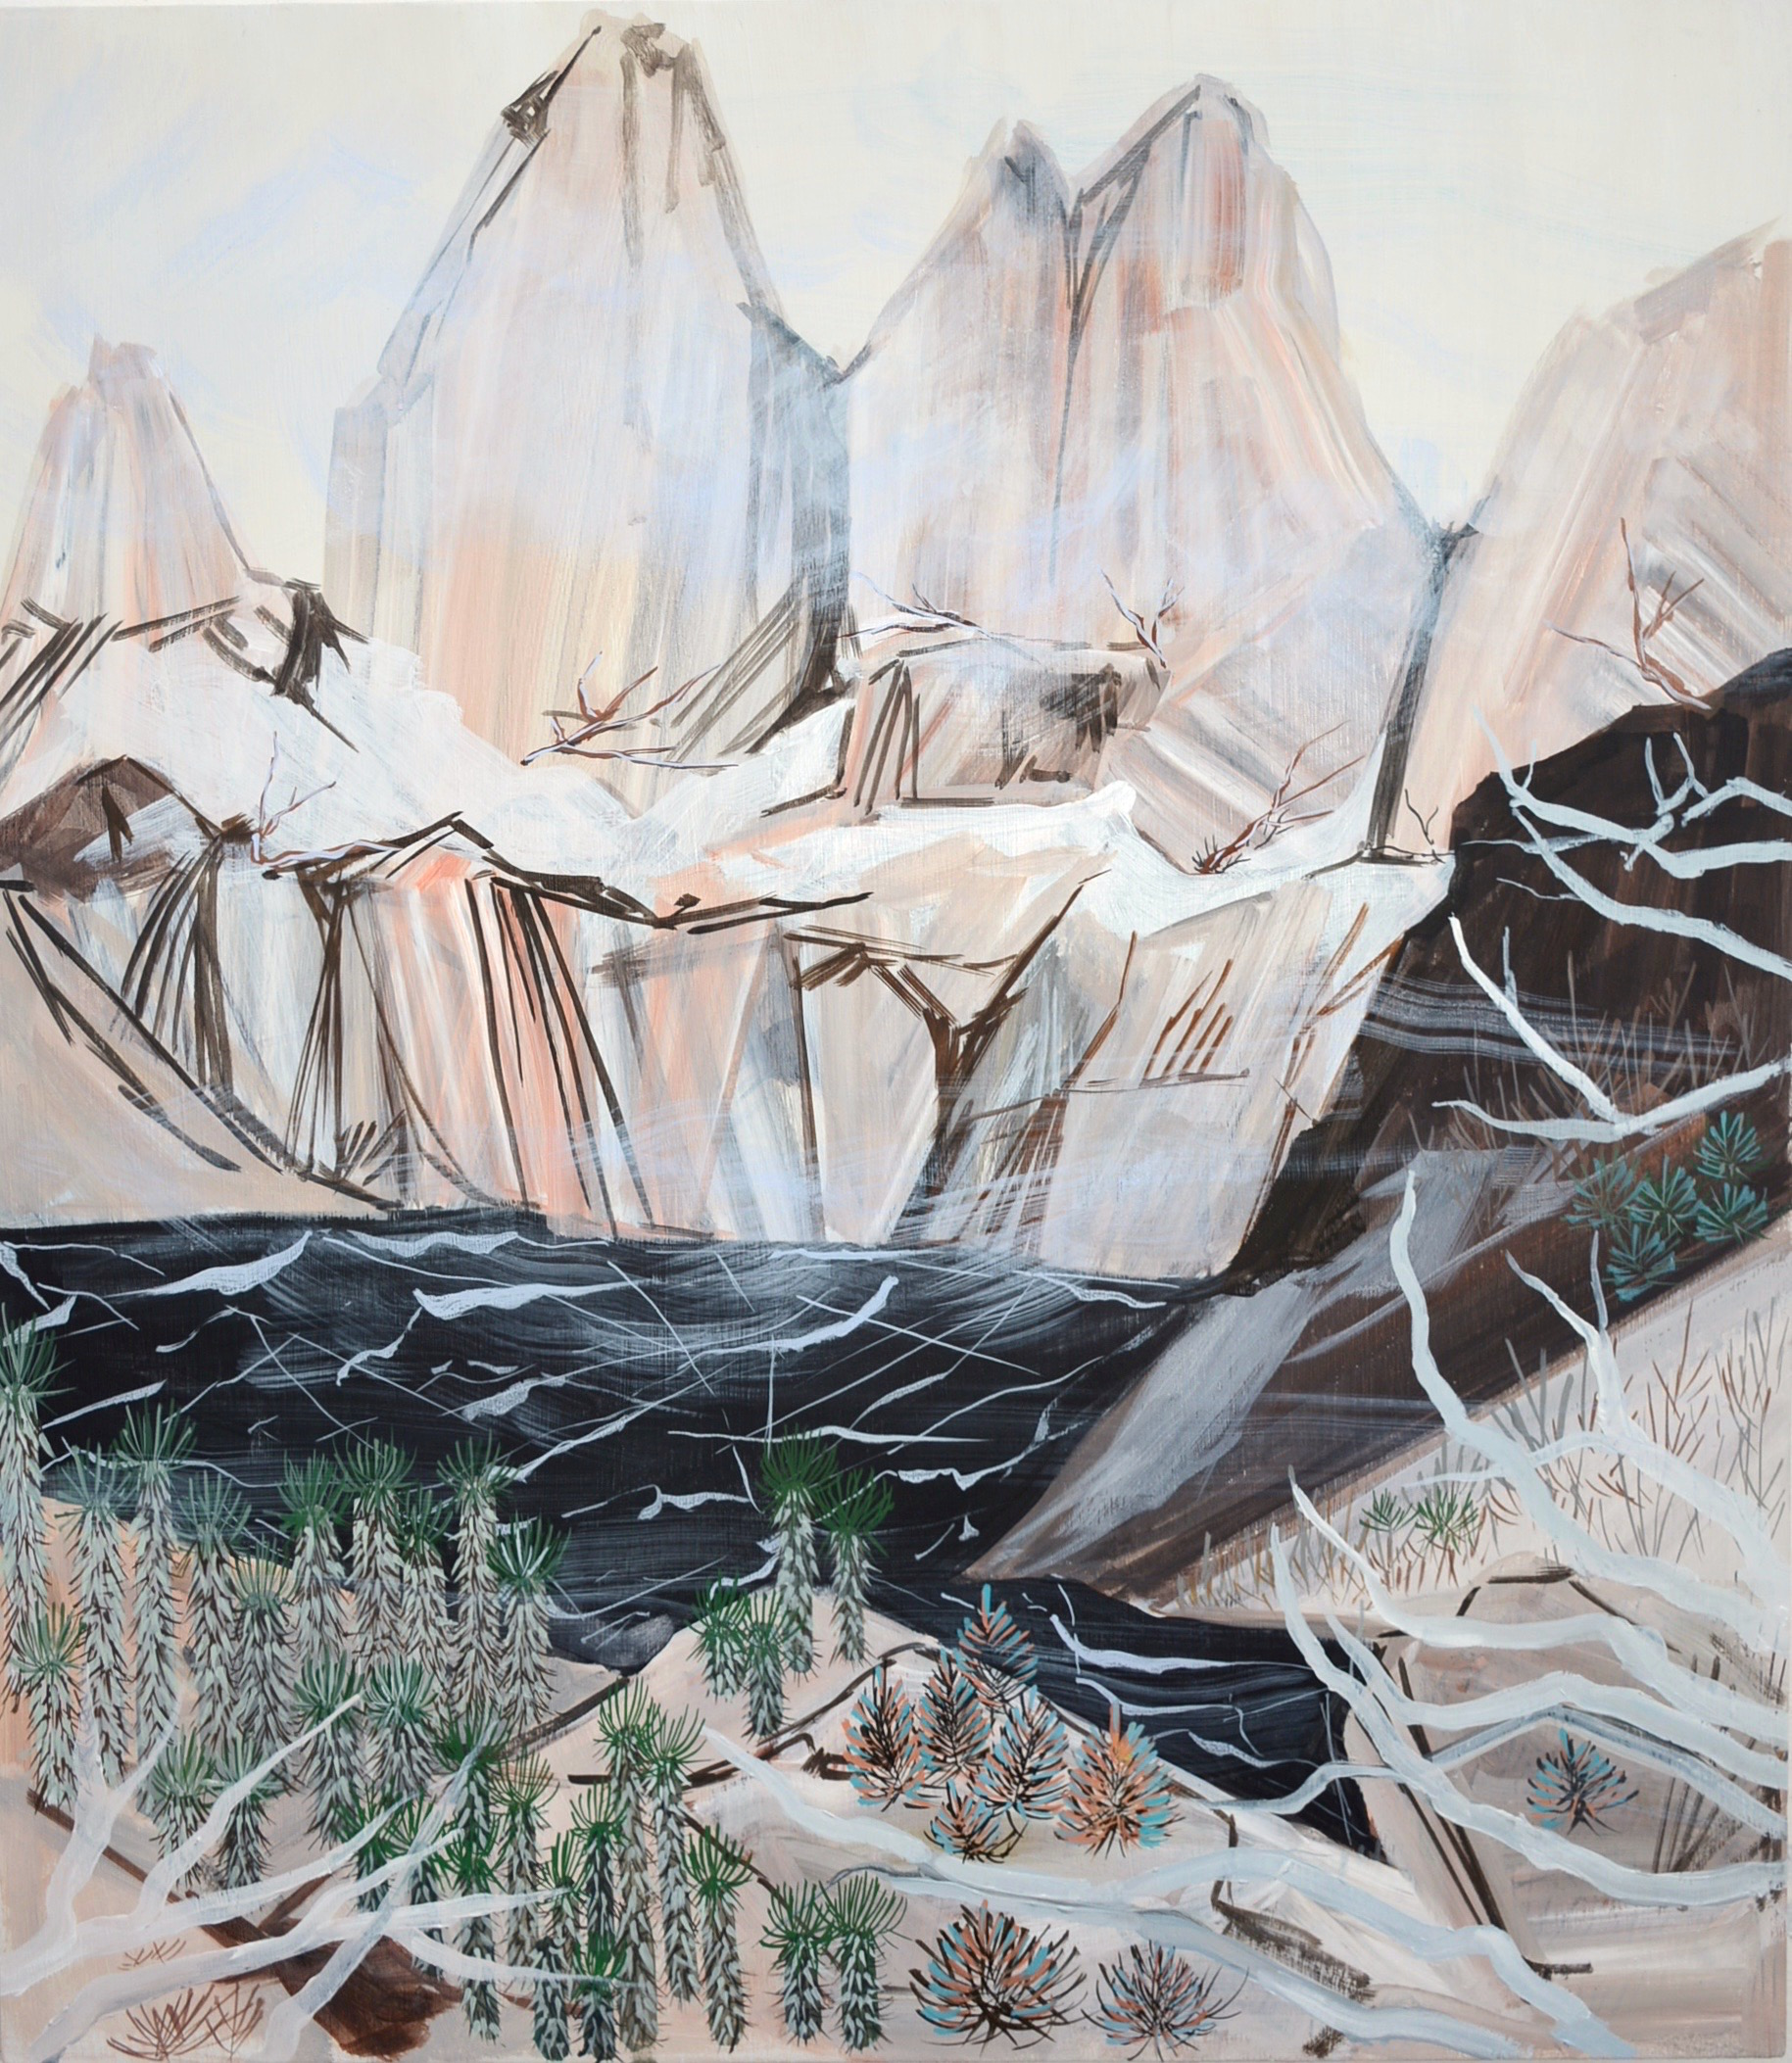 Erika Duque, Black Lake Mountain, acrylic pigment on wood panel.